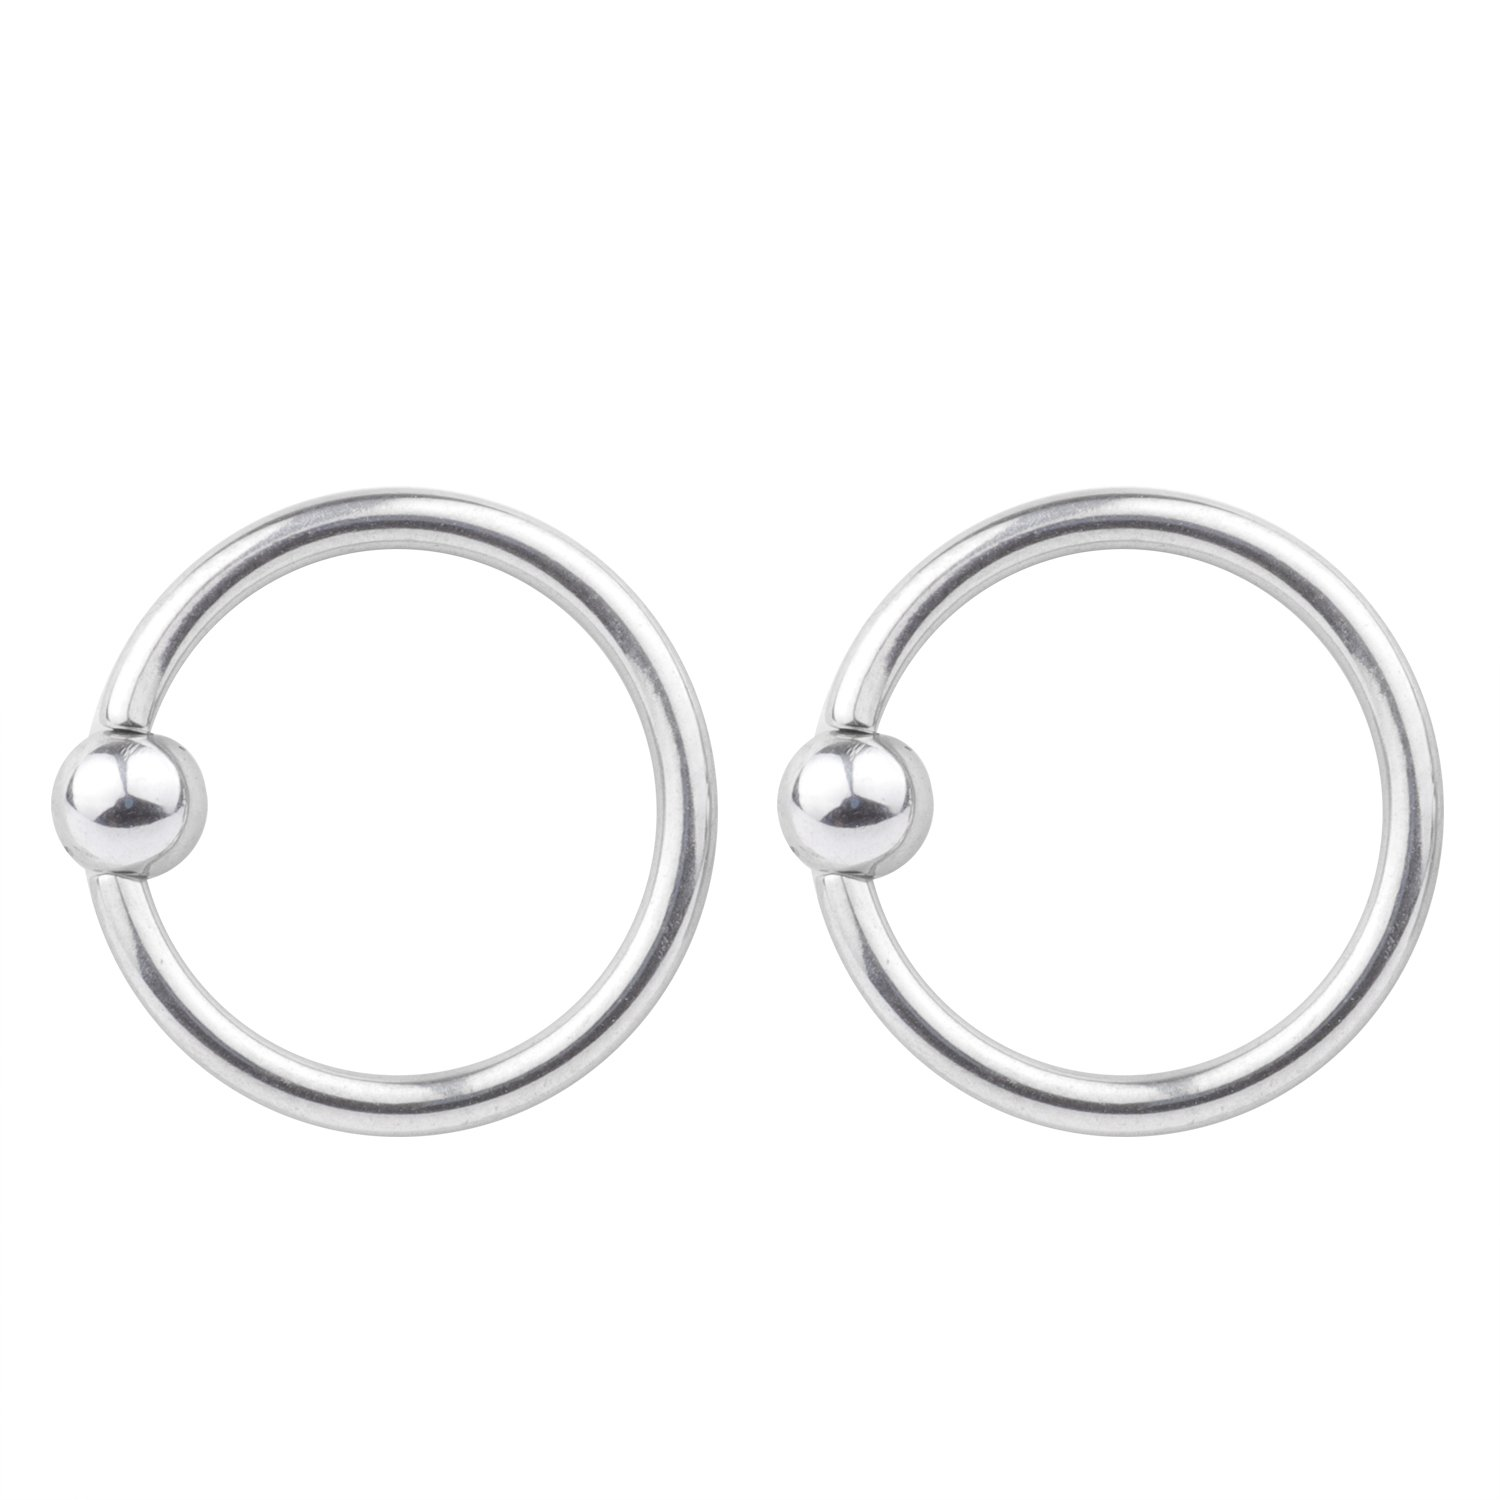 16G Unisex Surgical Stainless LipNoseNippleEyebrown Captive Hoop Ring Barbell Tragus Cartilage Stud Earrings 3mm Ball 6mm 2-4pcs